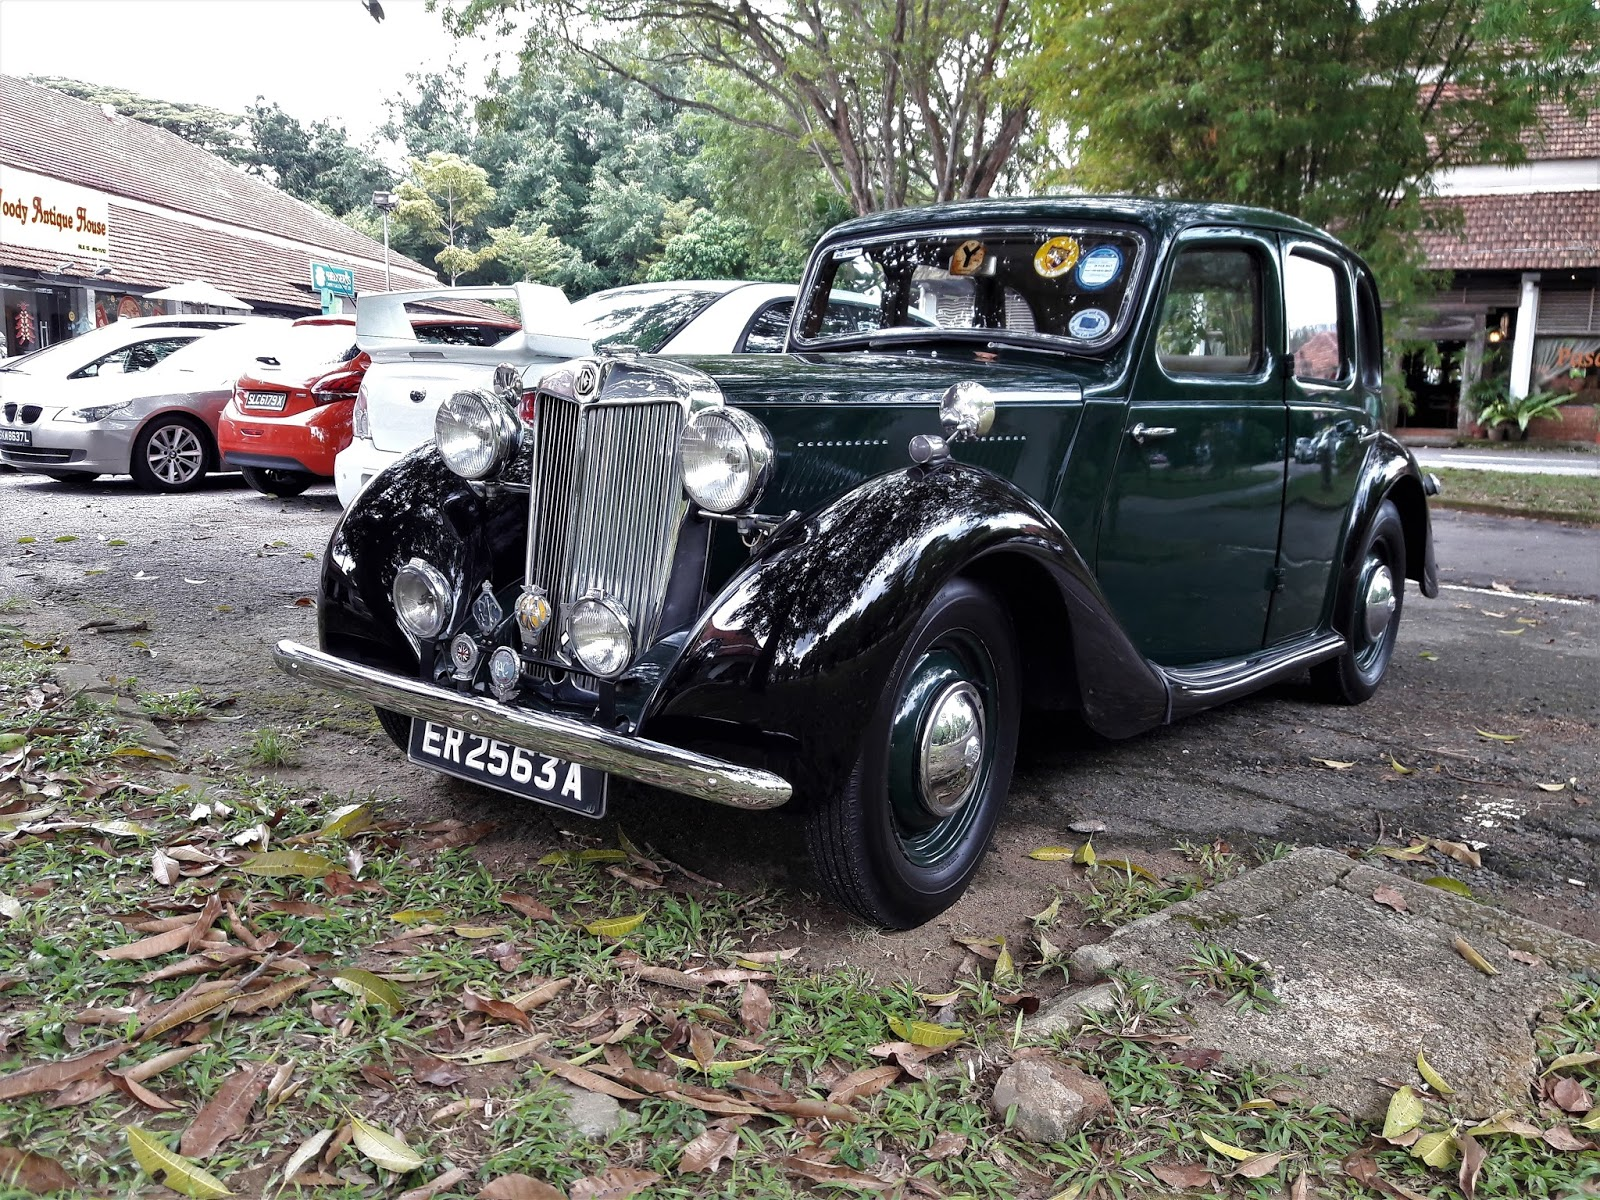 Singapore Vintage and Classic Cars: More than an old car #23: MG YA